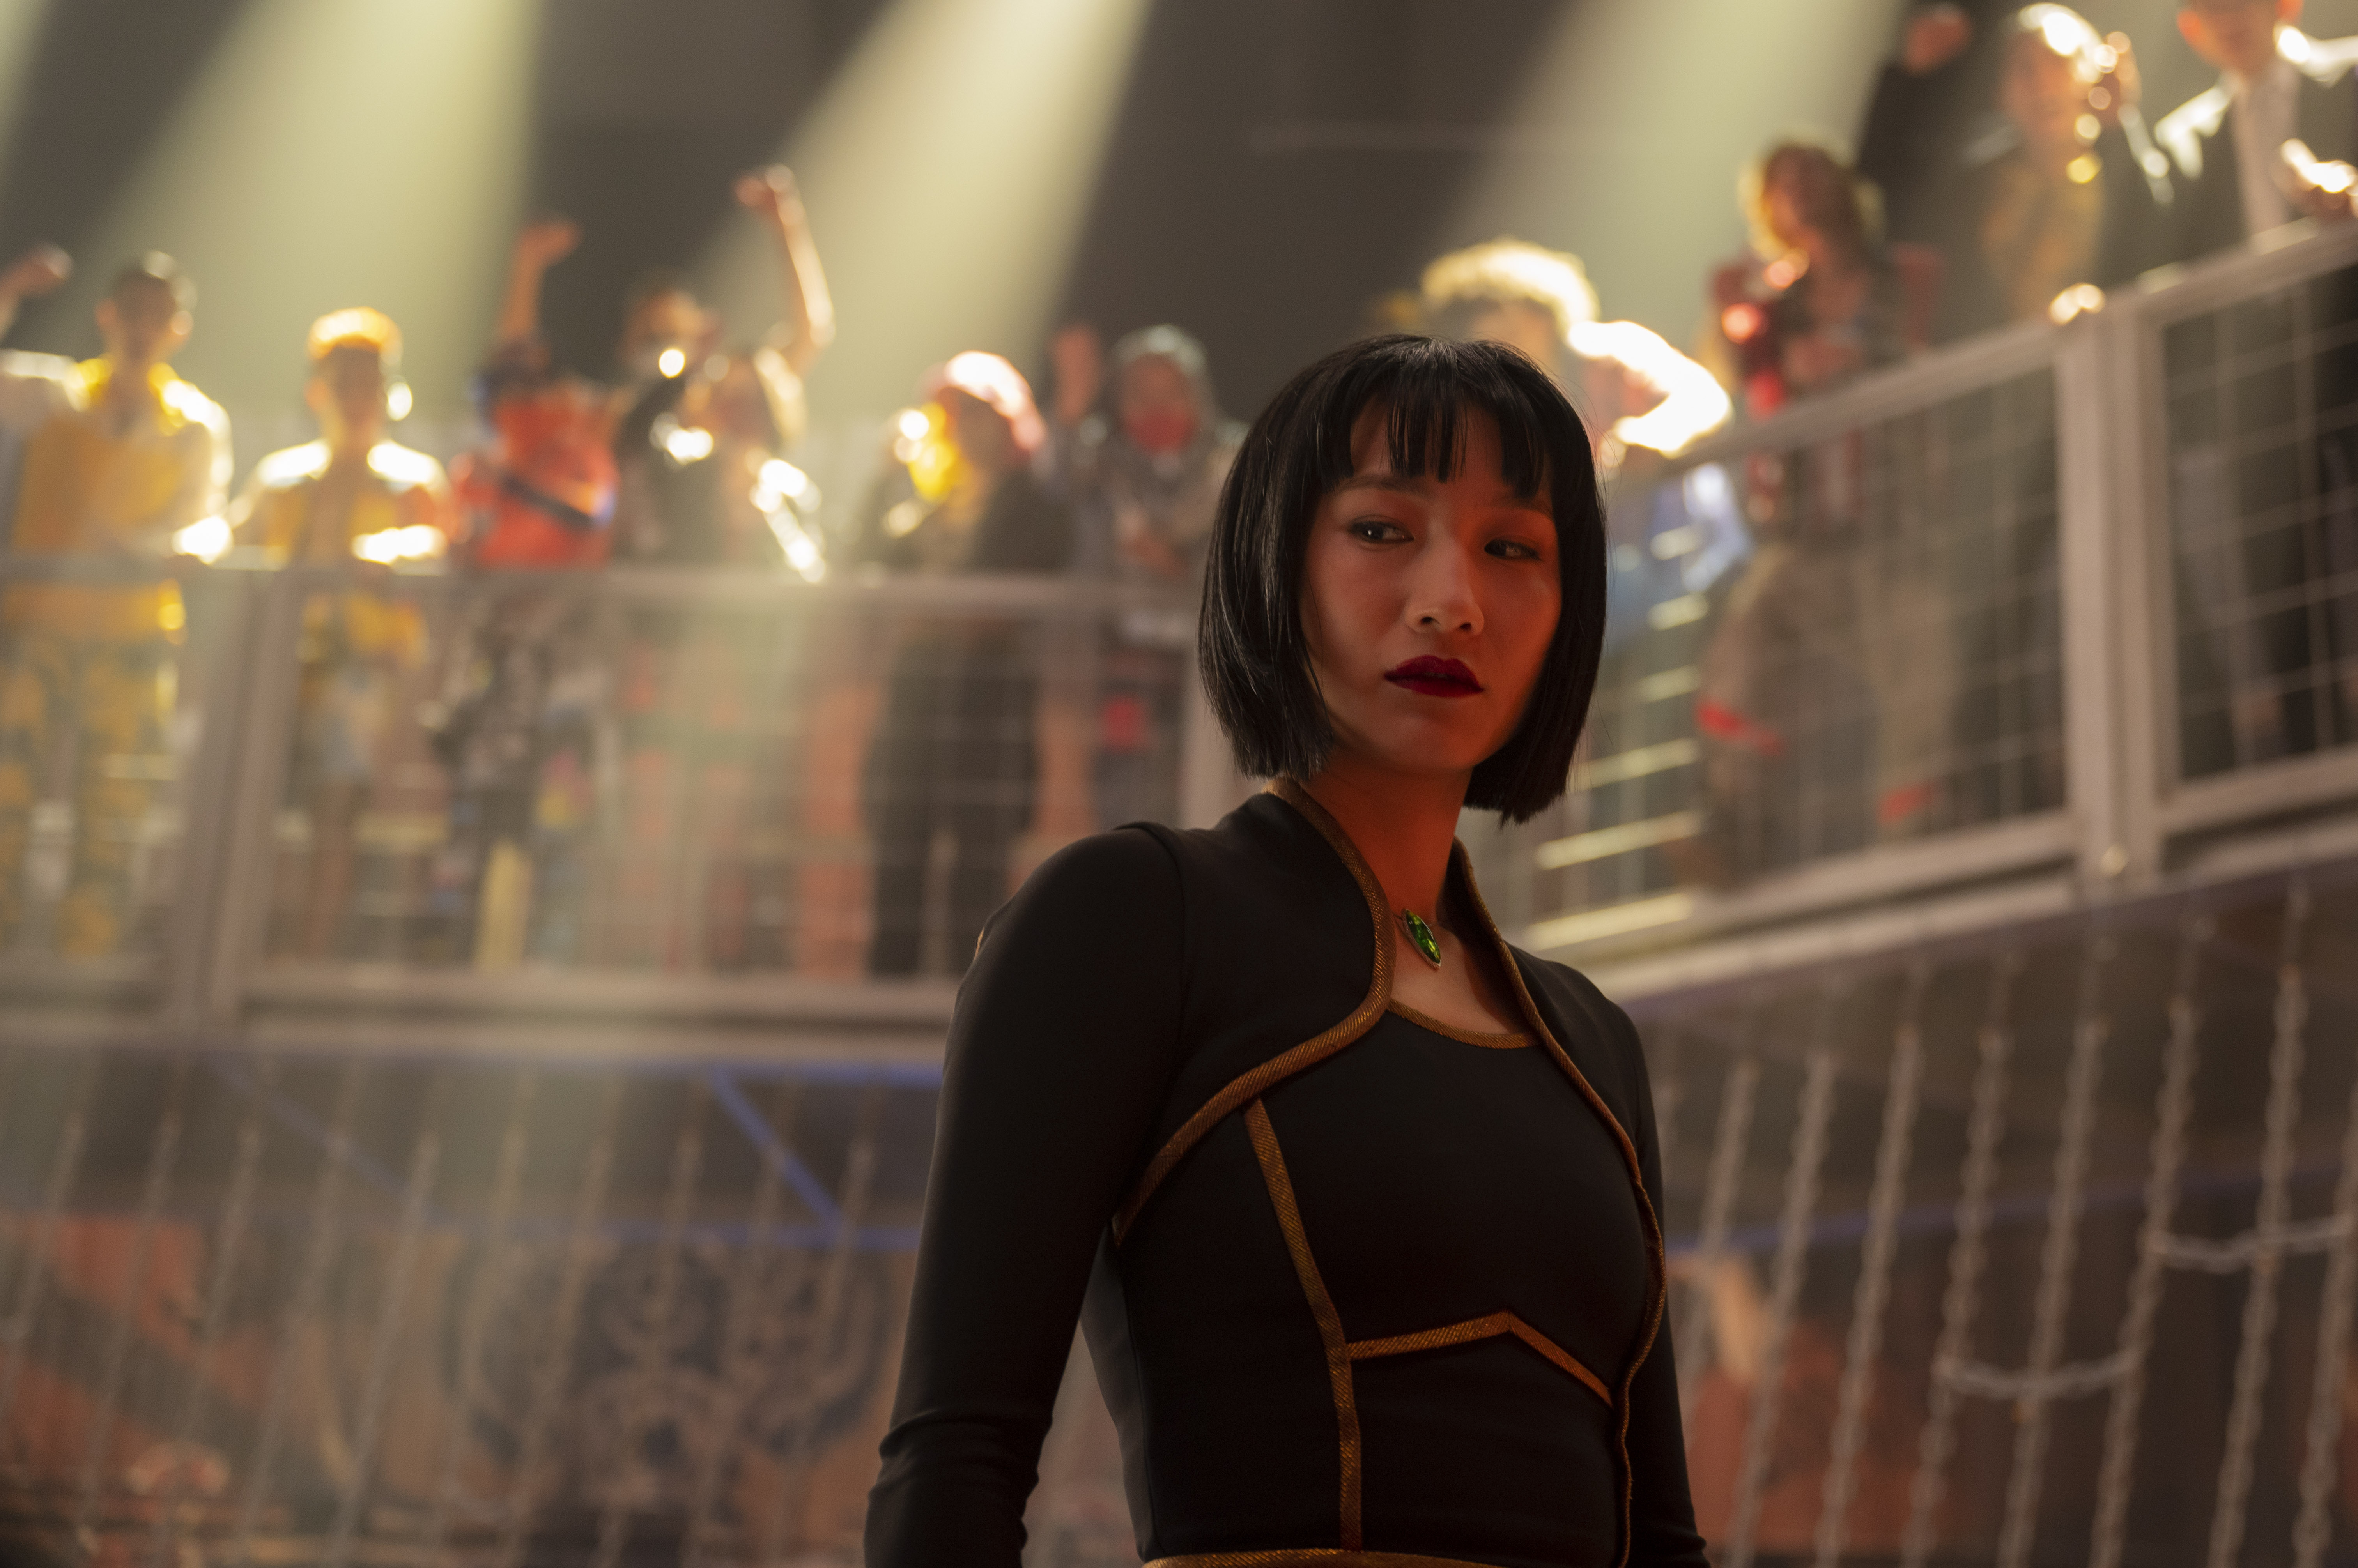 Xialing stands ready for a cage match in the Golden Daggers fight club in Shang-Chi and the Legend of the Ten Rings.